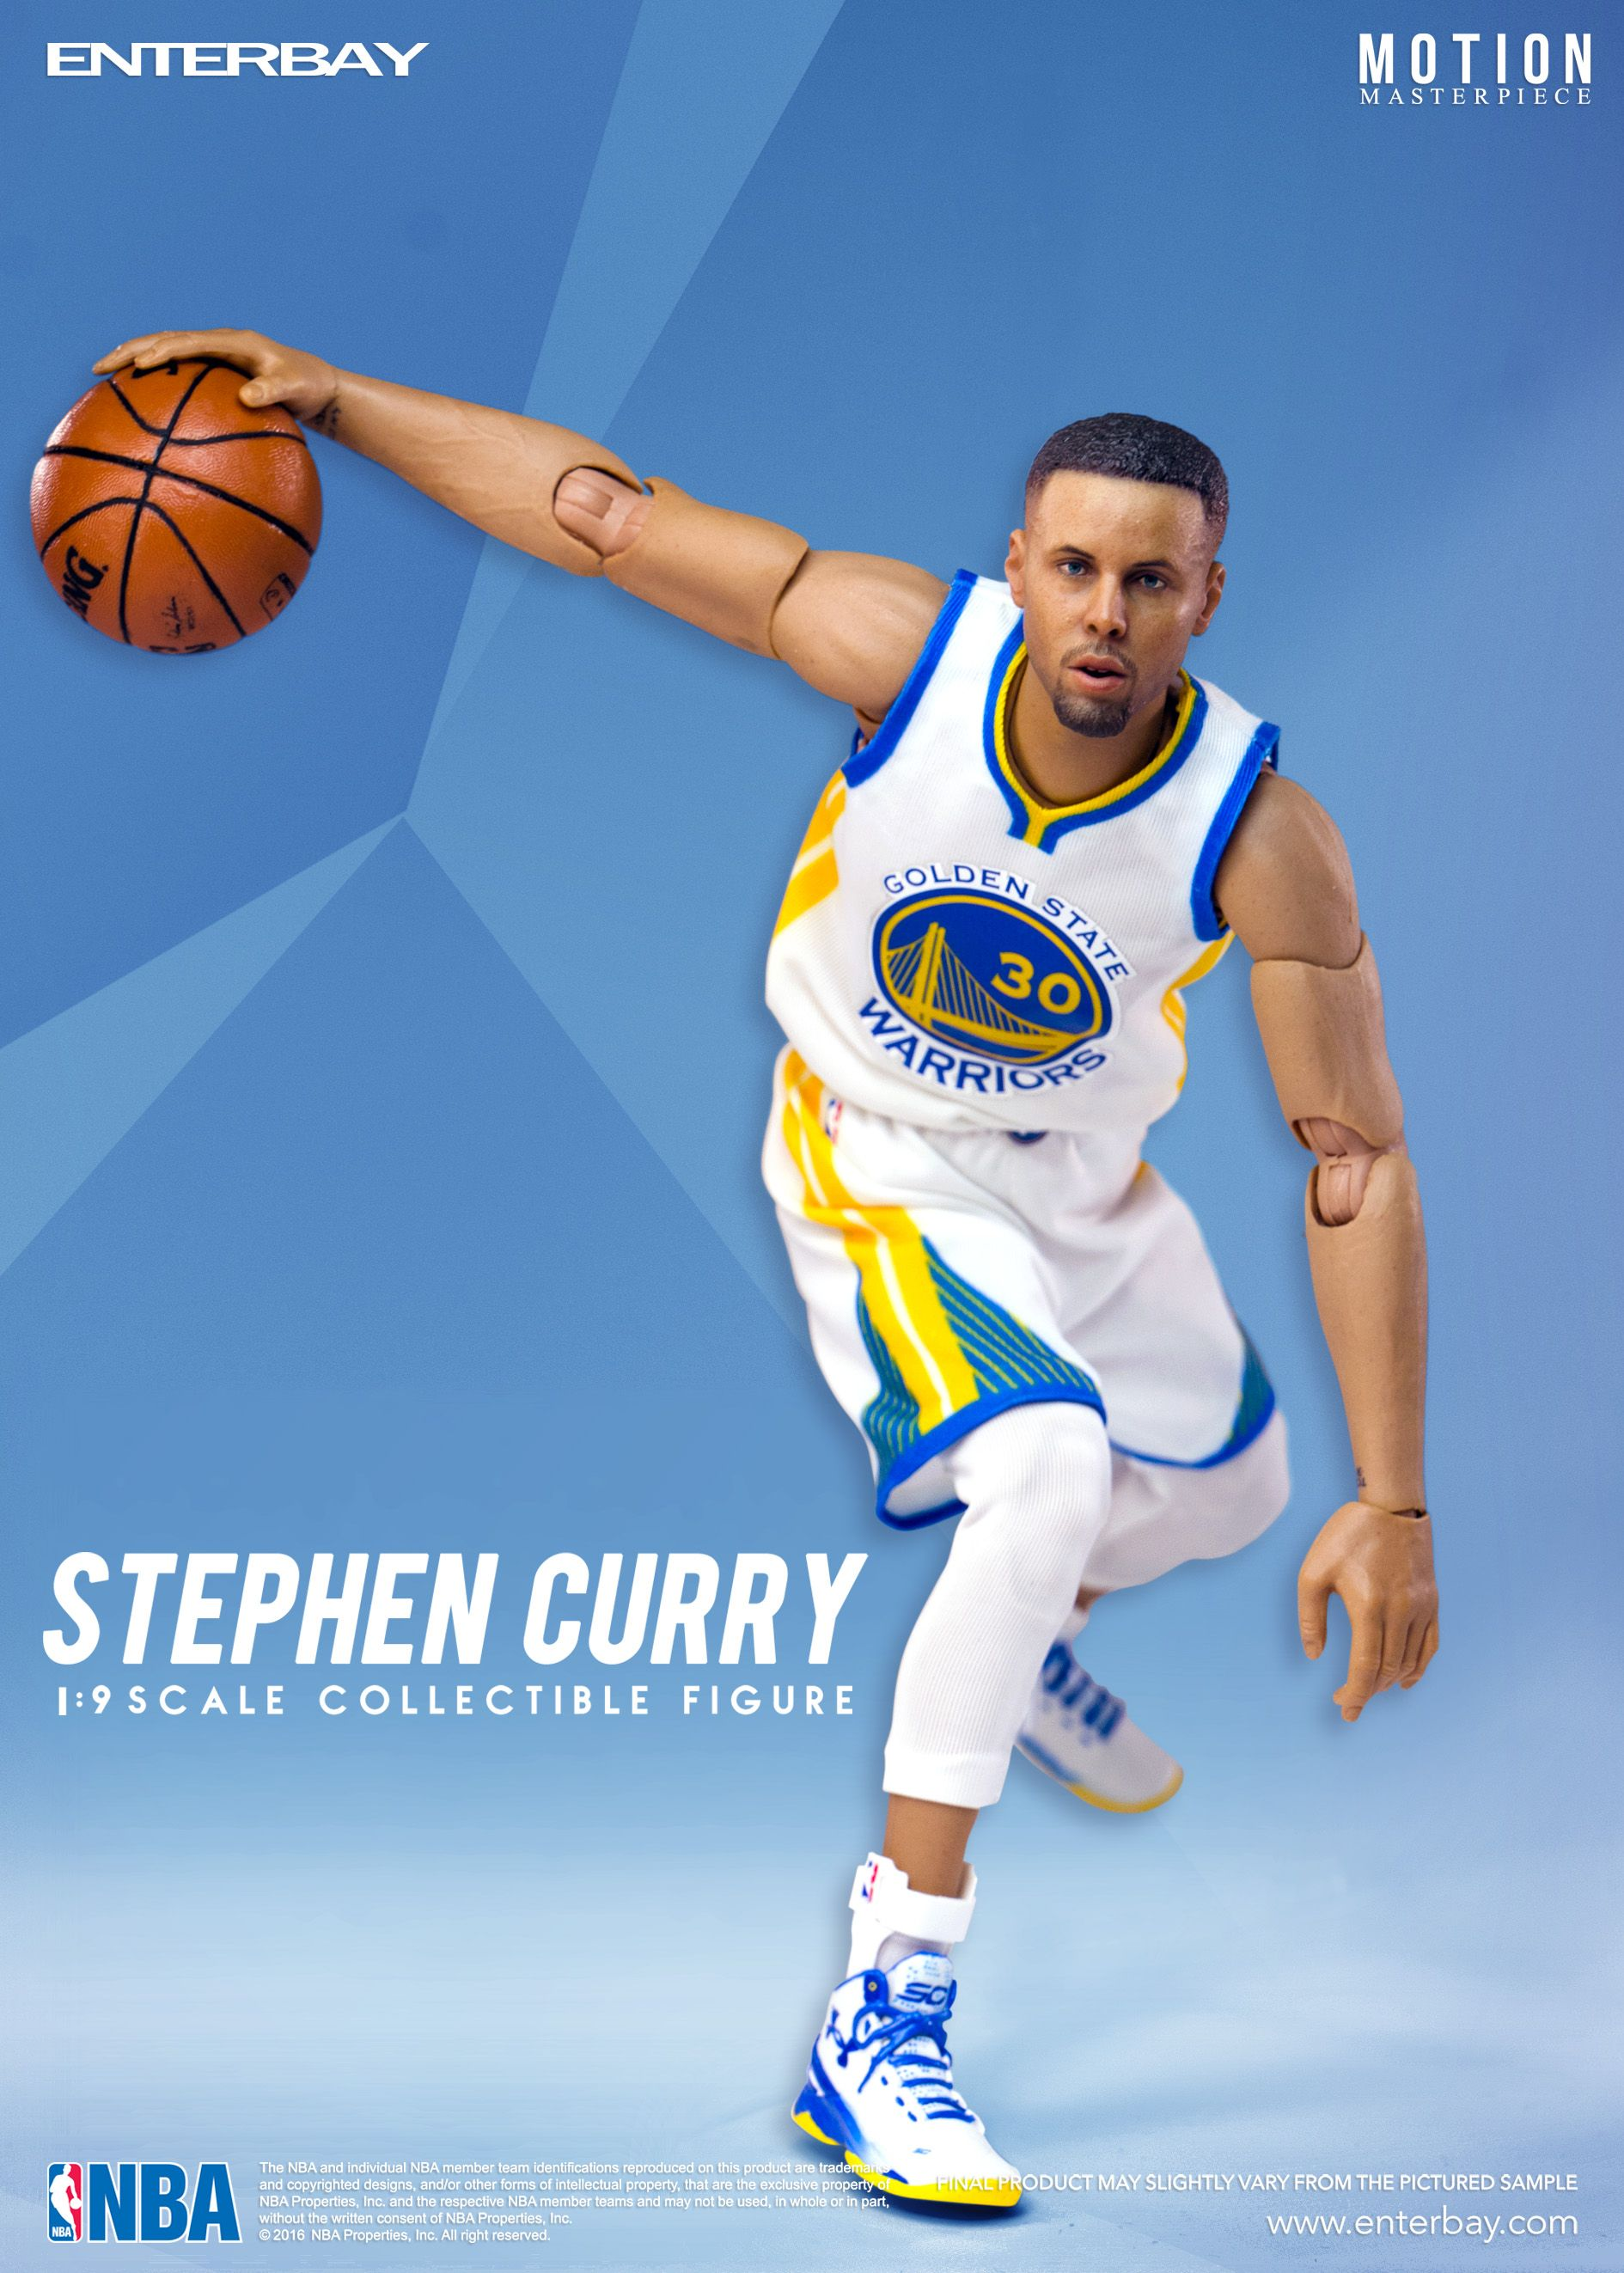 bd2b87536150 1 9 Motion Master Pieces Stephen Curry by ENTERBAY Official which invites  you to experience the innovation of our officially licenced NBA   movie ...